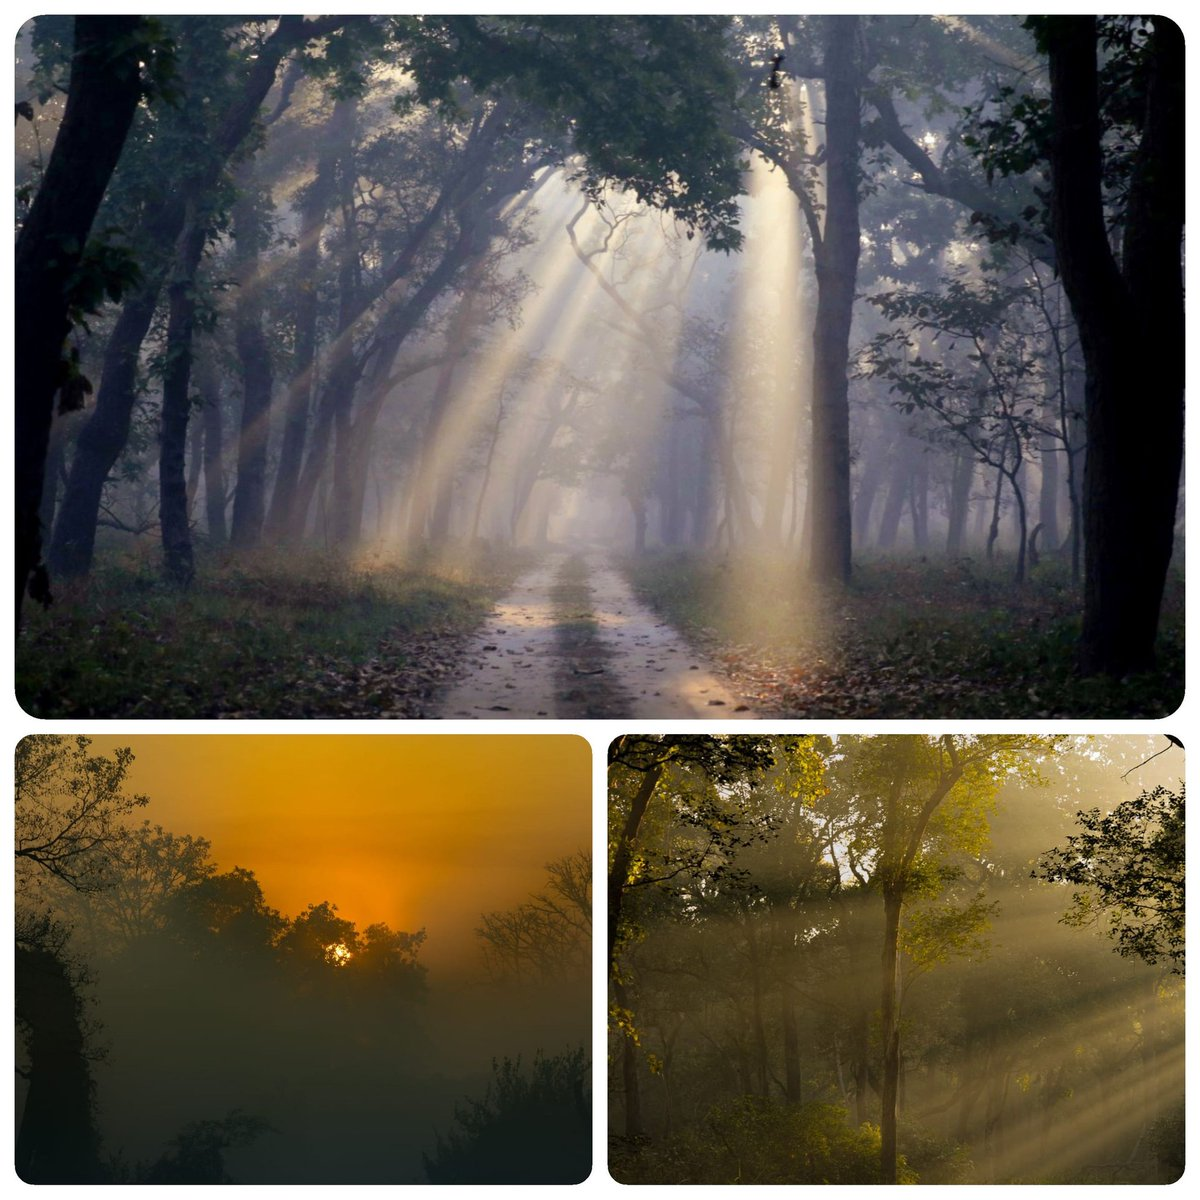 The magical misty mornings in the Saal forest of Dudhwa N.P. in the Terai arc landscape during winters is incredibly beautiful and must be experienced. @rameshpandeyifs @PrakashJavdekar, @uptourismgov